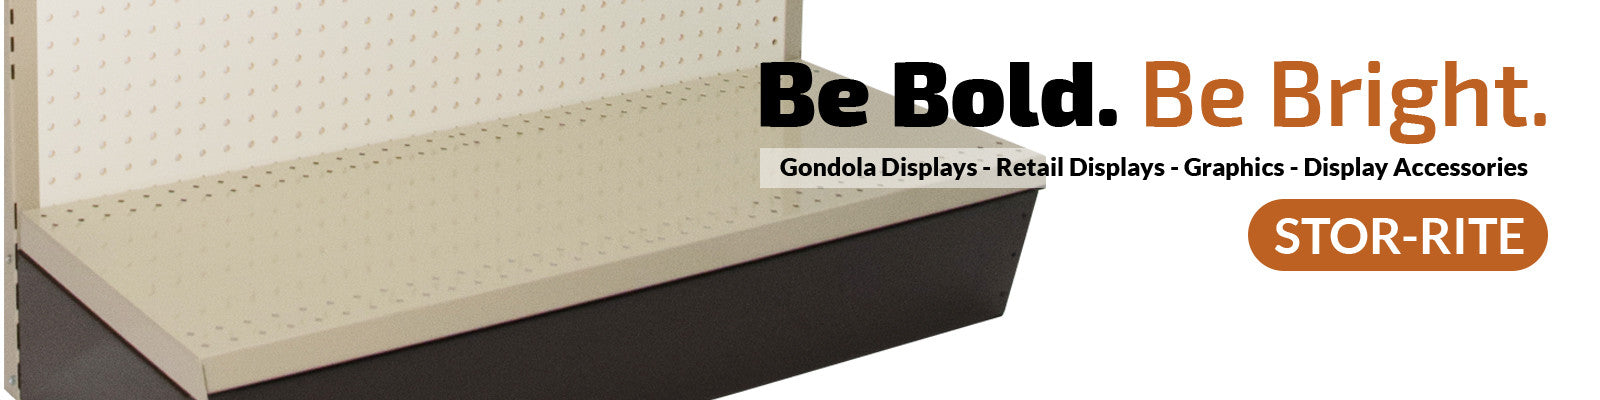 Gondola Displays & Store Fixtures for Retail Store Merchandising